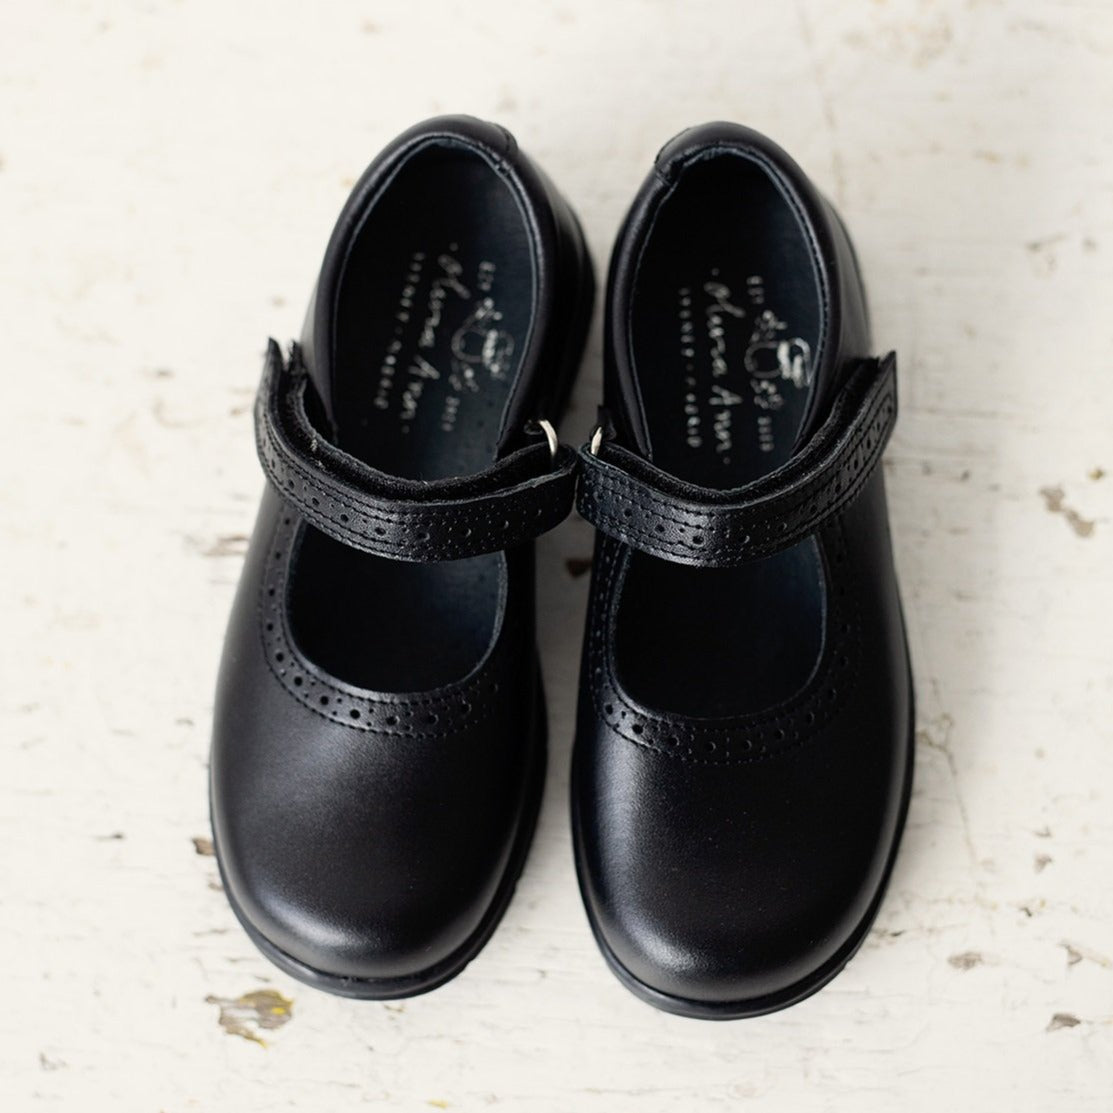 These classic light weight black leather Mary Jane shoes are perfect for school and any other formal occasion.  School shoes. Olivia Ann Shoes. Girl Shoes.